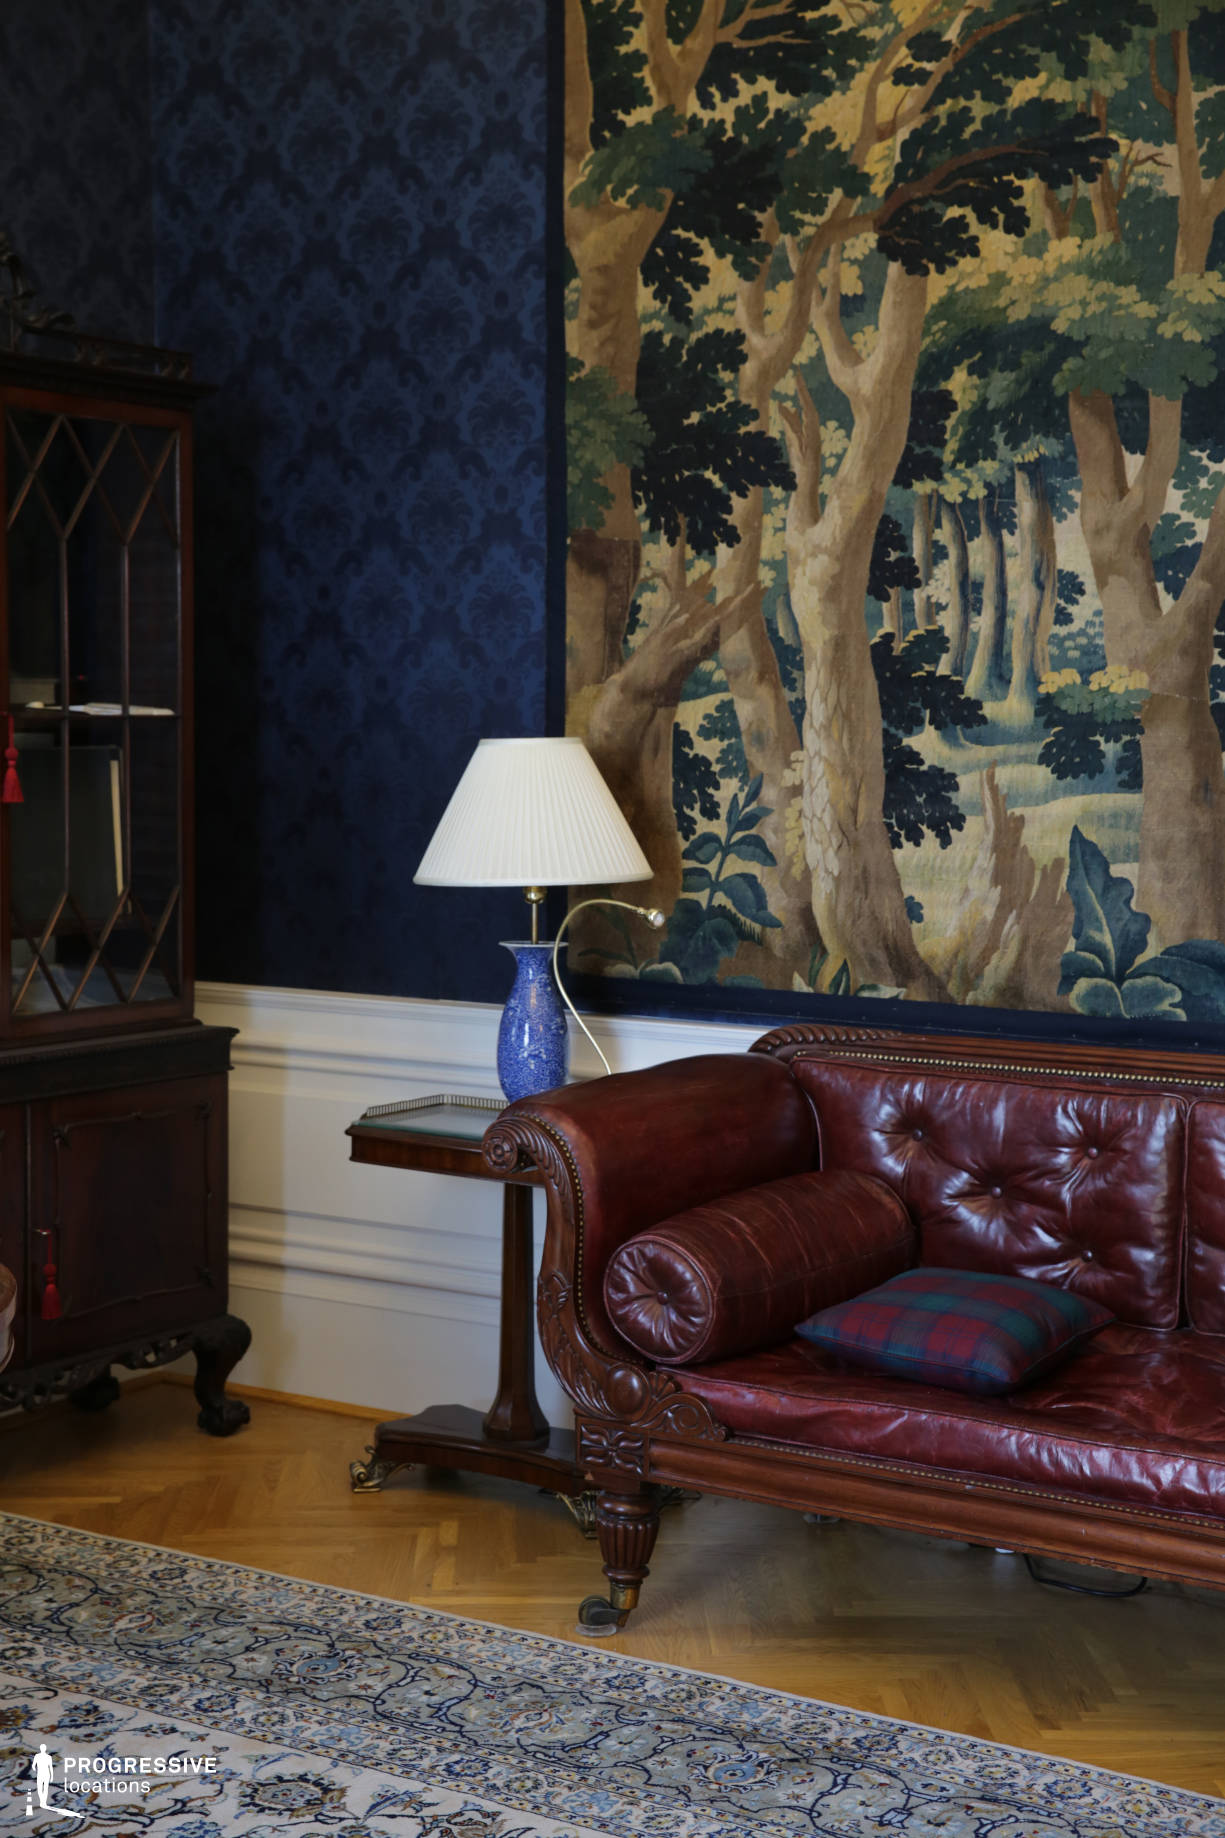 Locations in Budapest: Blue Room with Gobelin